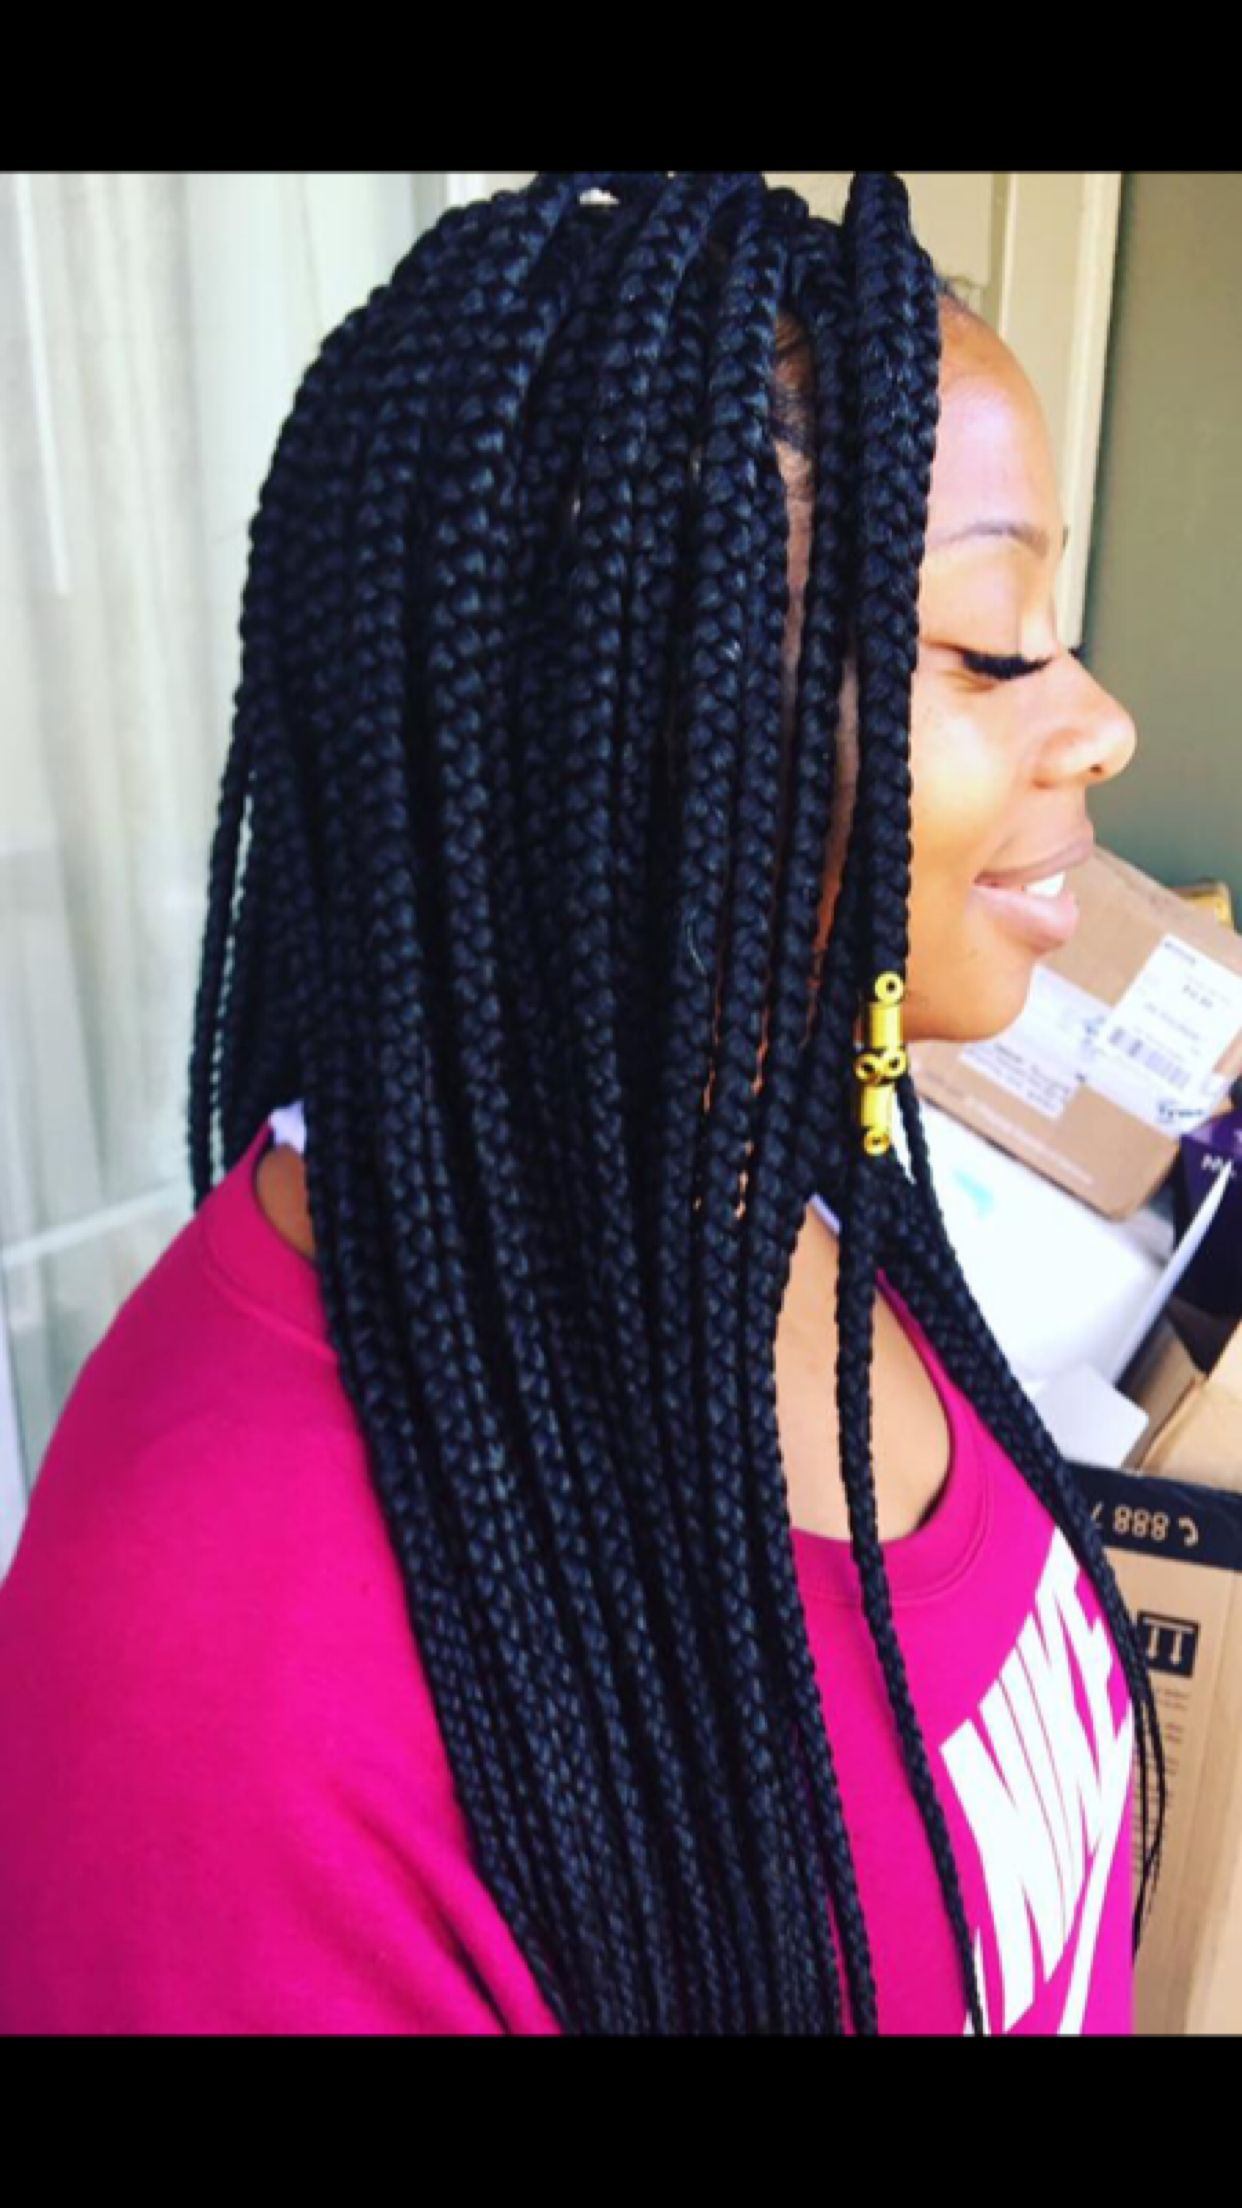 Pin By Adama Traore On Ideal African Hair Braiding African Braids Hairstyles African Hairstyles Braided Hairstyles